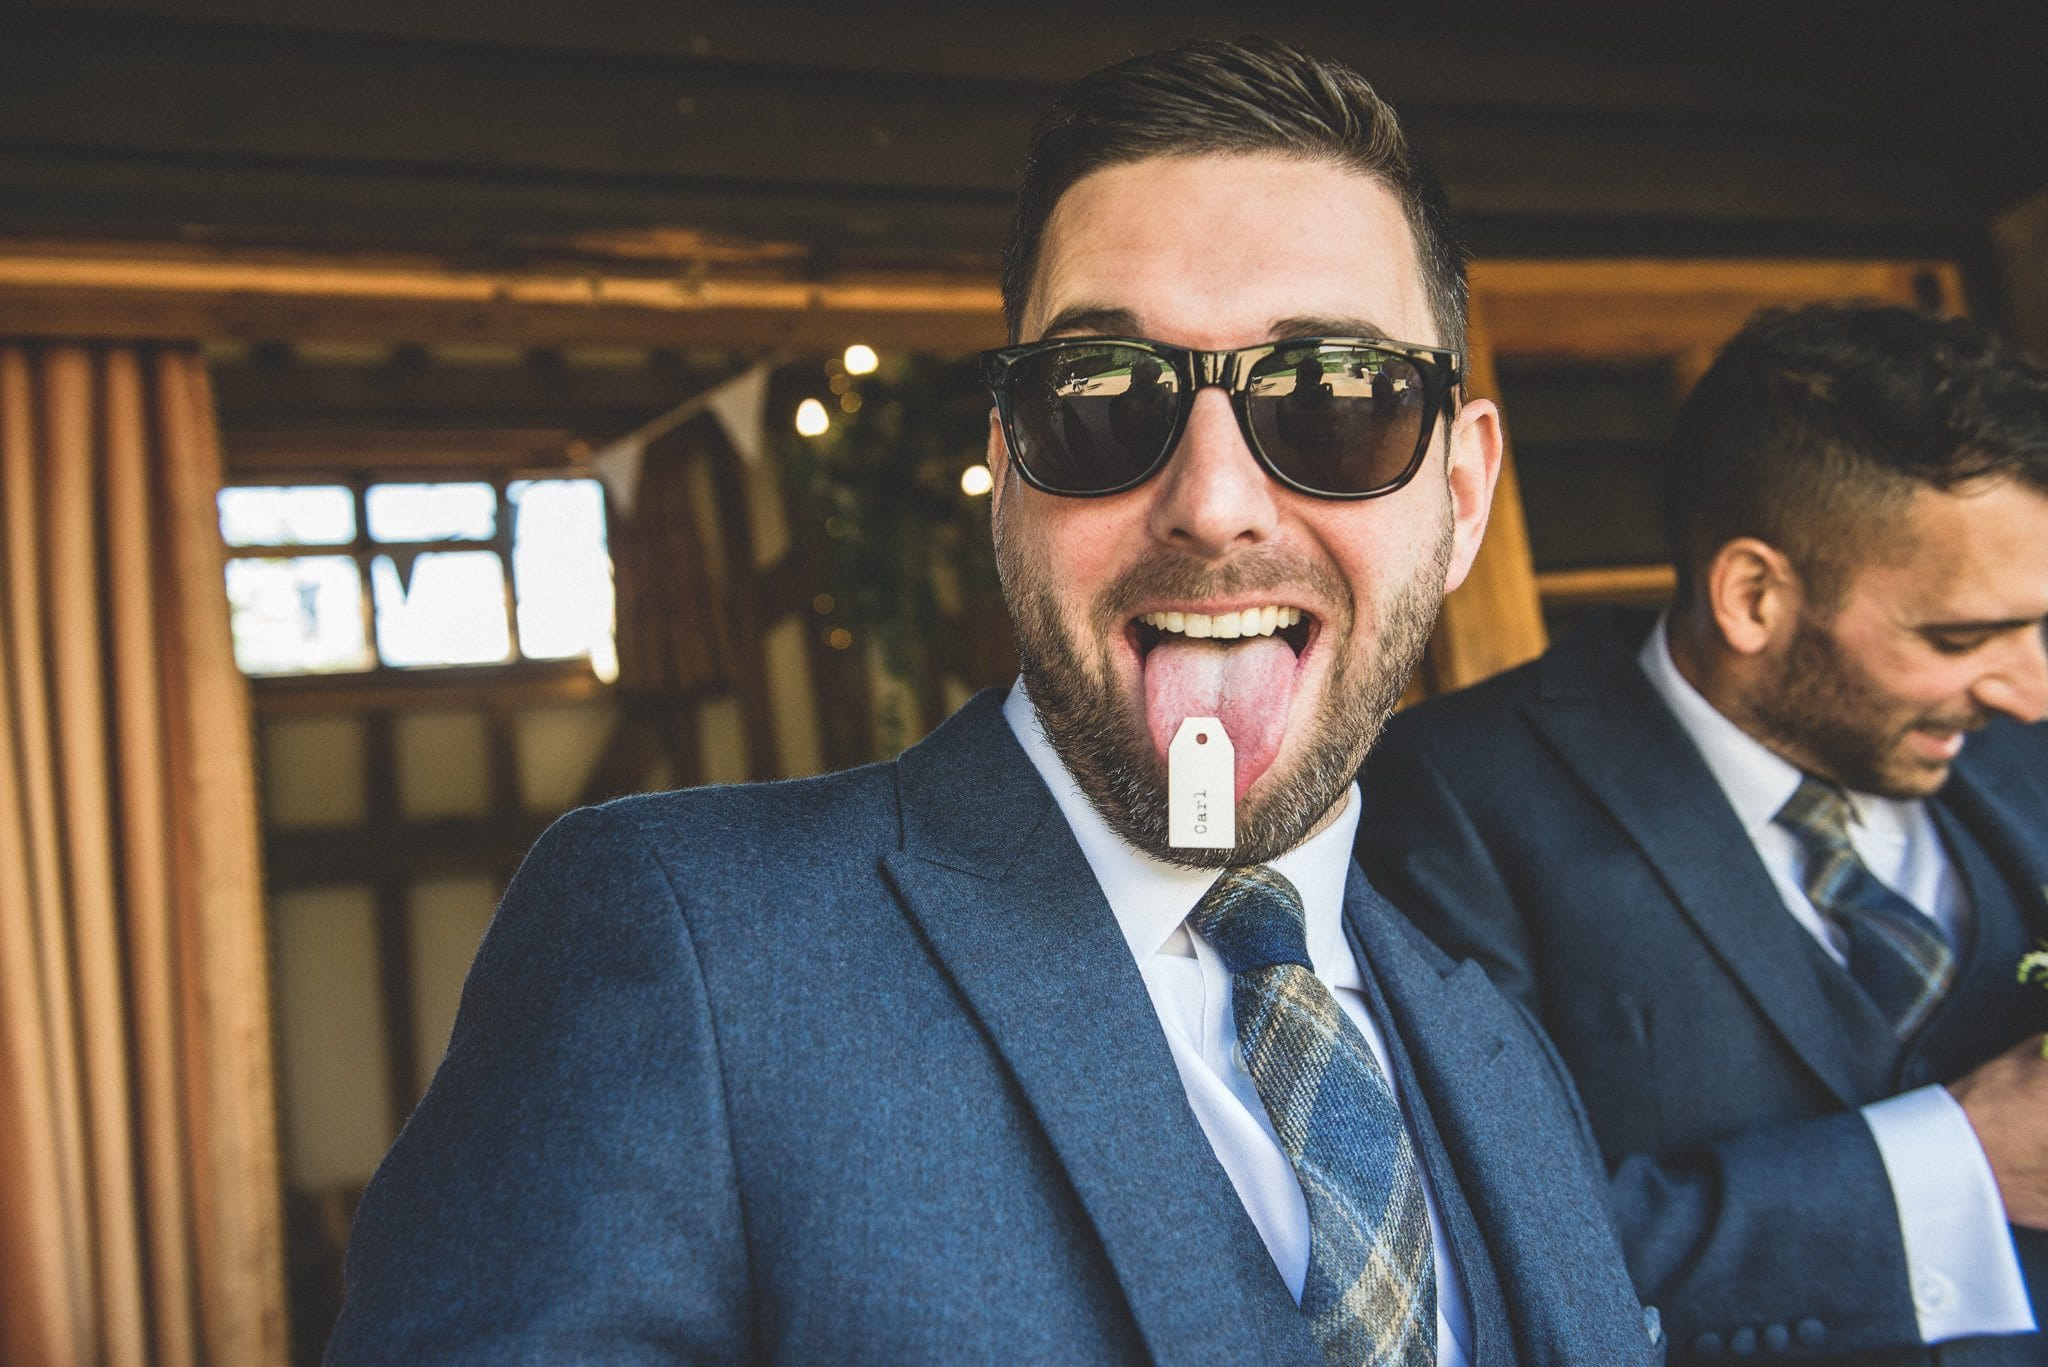 One of the groomsmen sticks his tongue out, showing a paper label attached to the end of it!